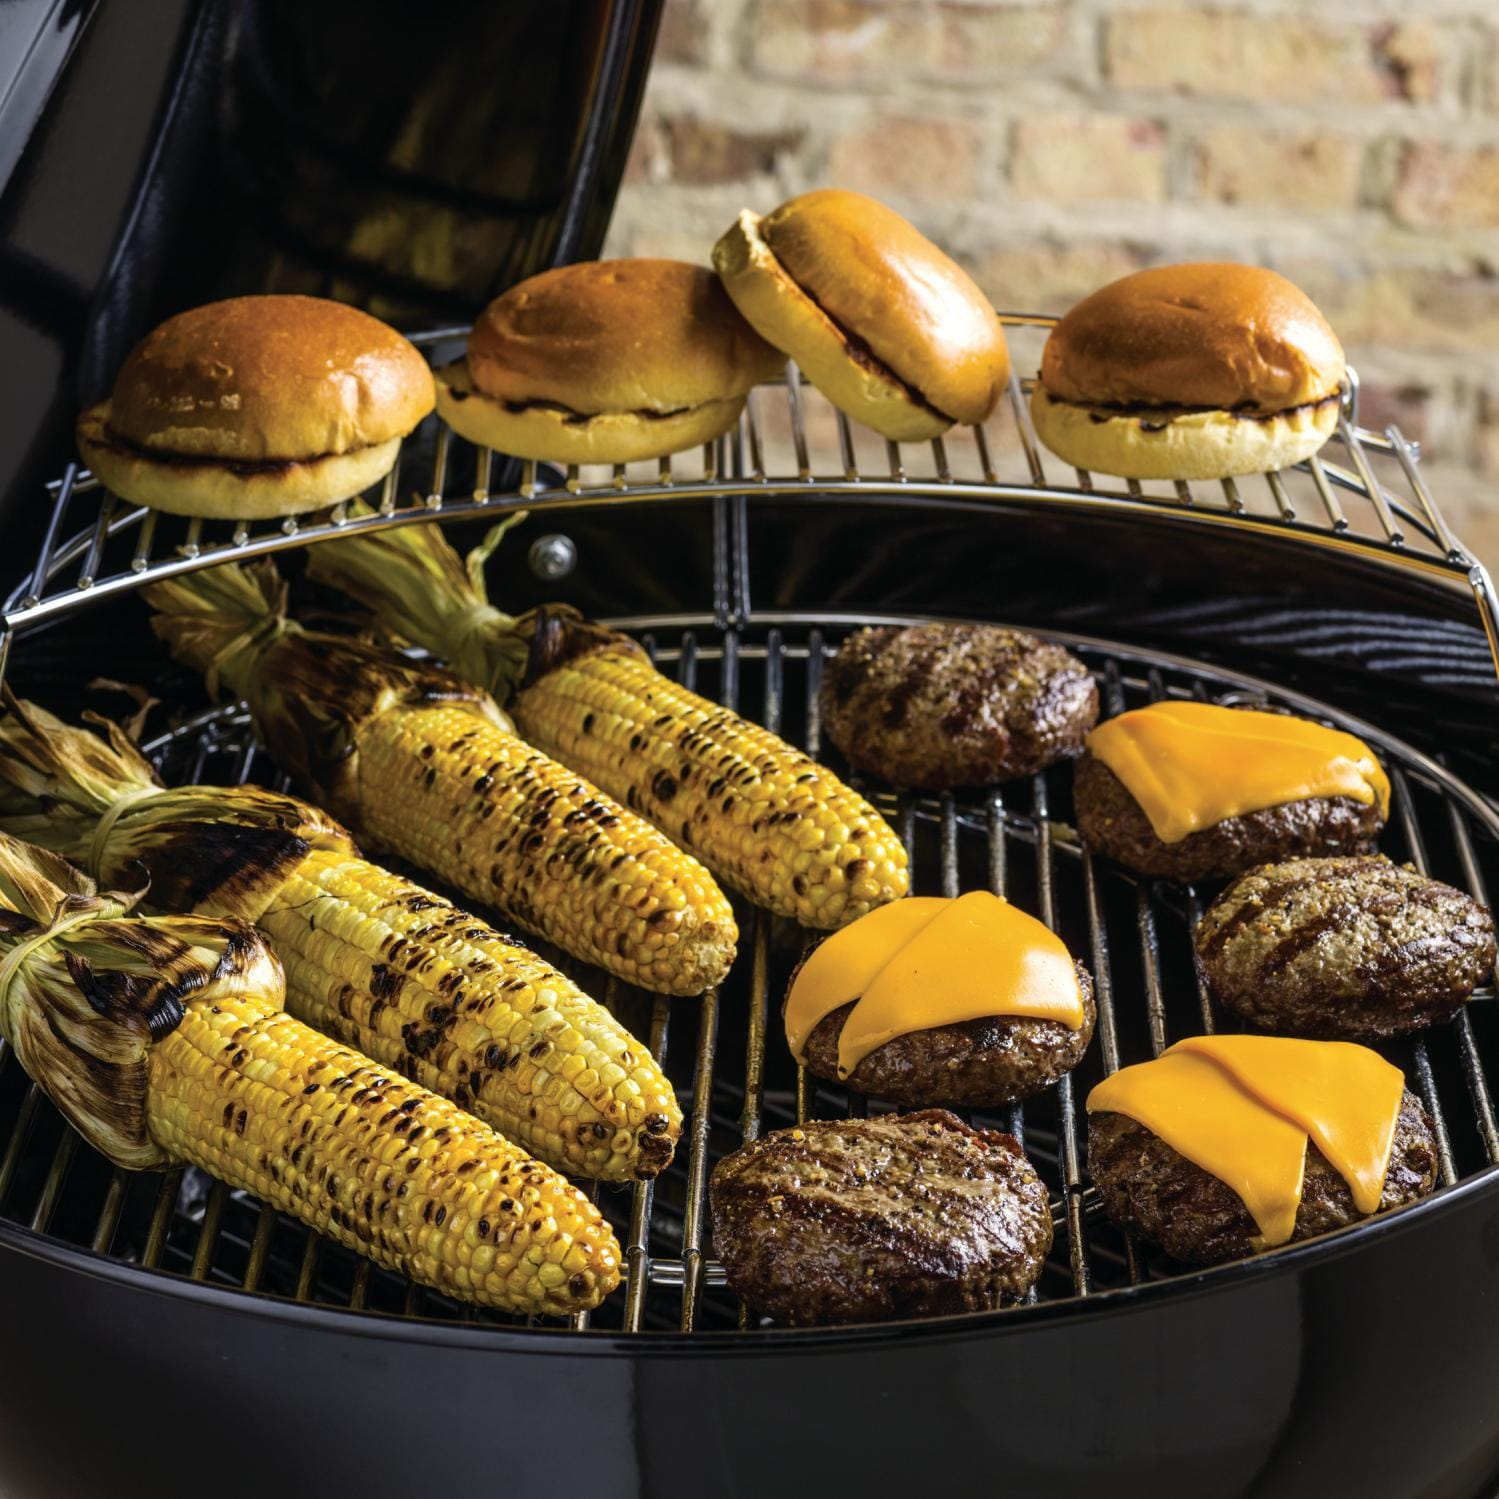 weber master touch 22 inch charcoal grill with gourmet bbq system cooking grate black bbq guys. Black Bedroom Furniture Sets. Home Design Ideas